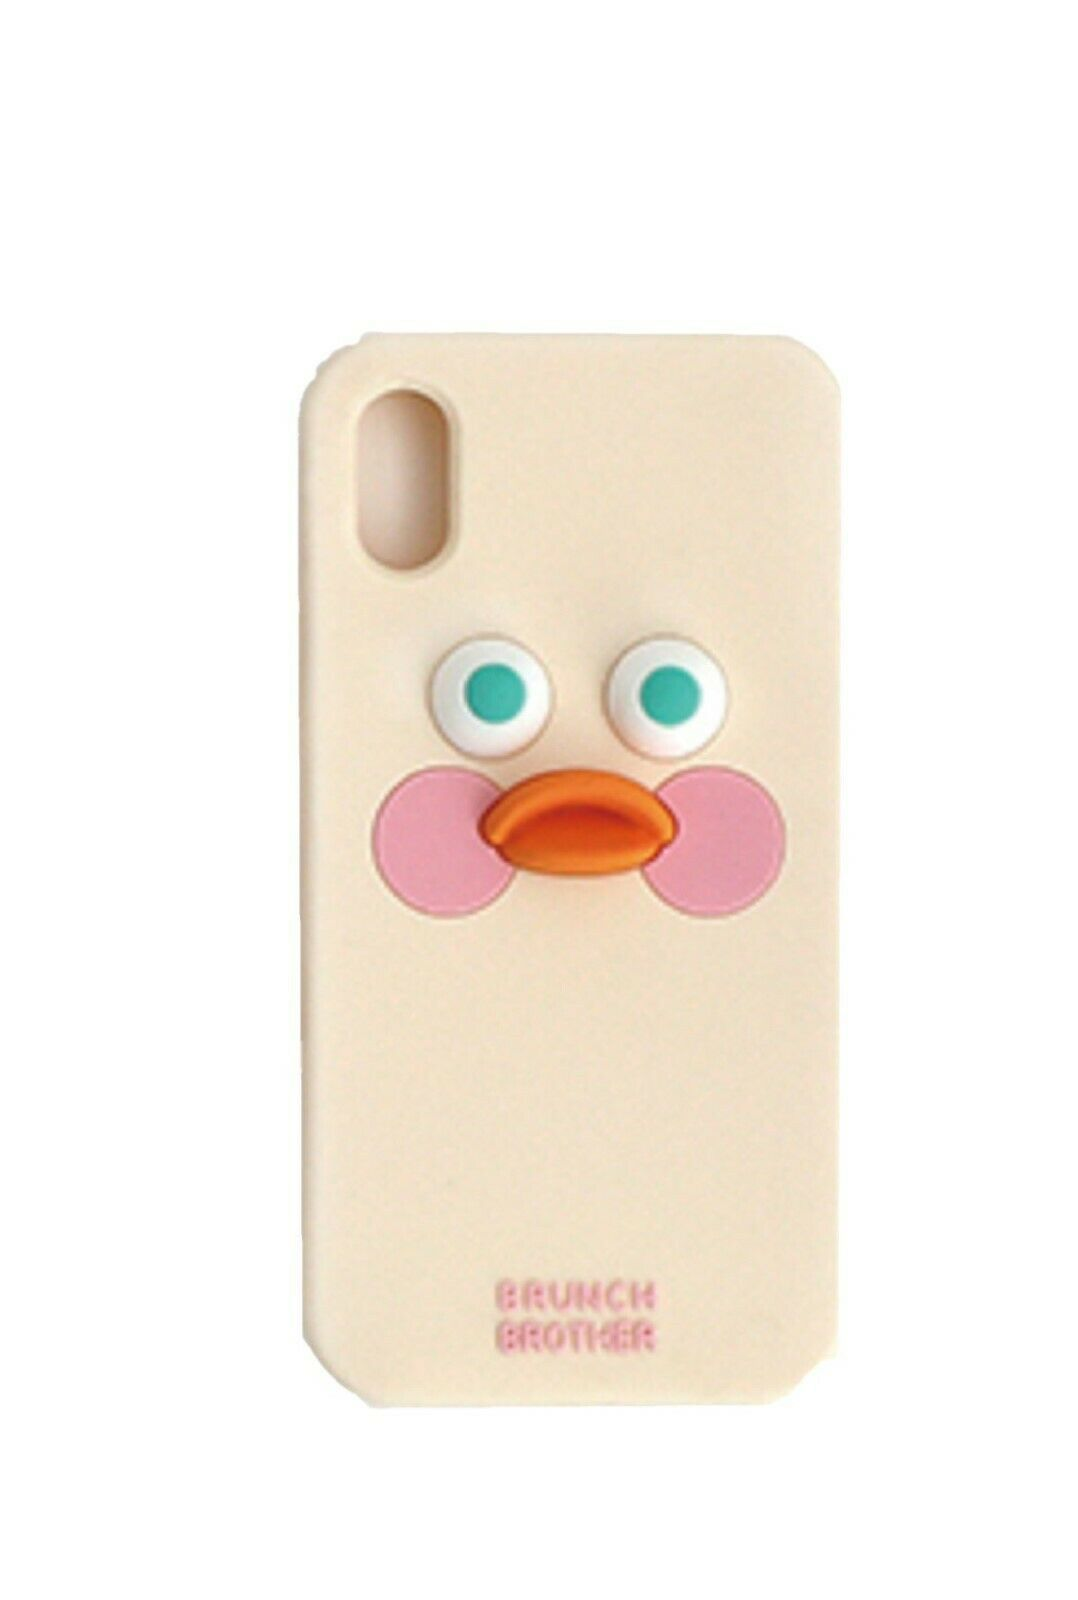 Brunch Brother iPhone X Silicon Case Cover Protector Version 2 (White Duck)